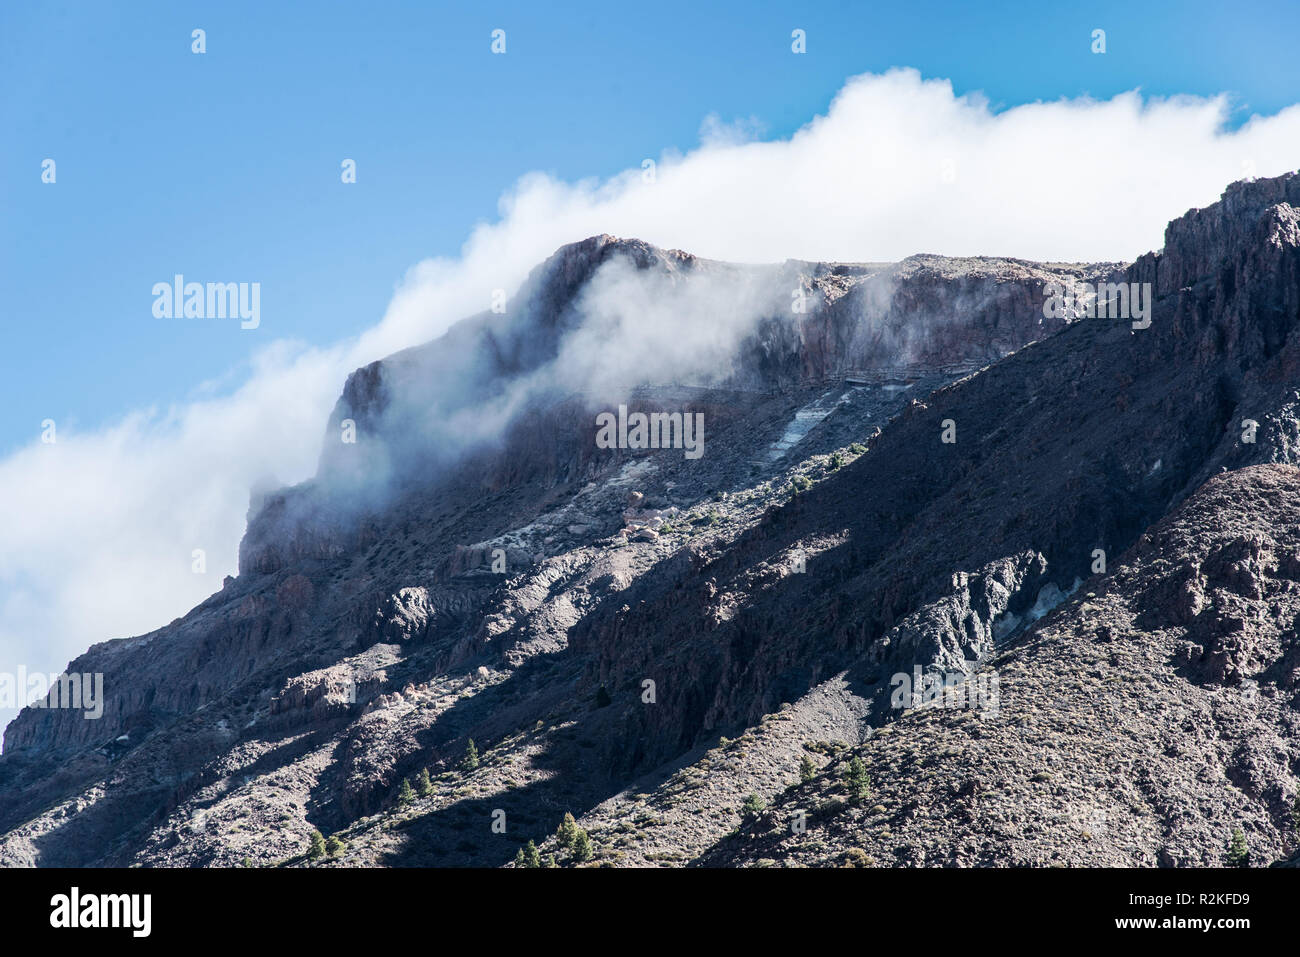 Landscape in El Teide National Park with a partly cloudy mountain peak. - Stock Image